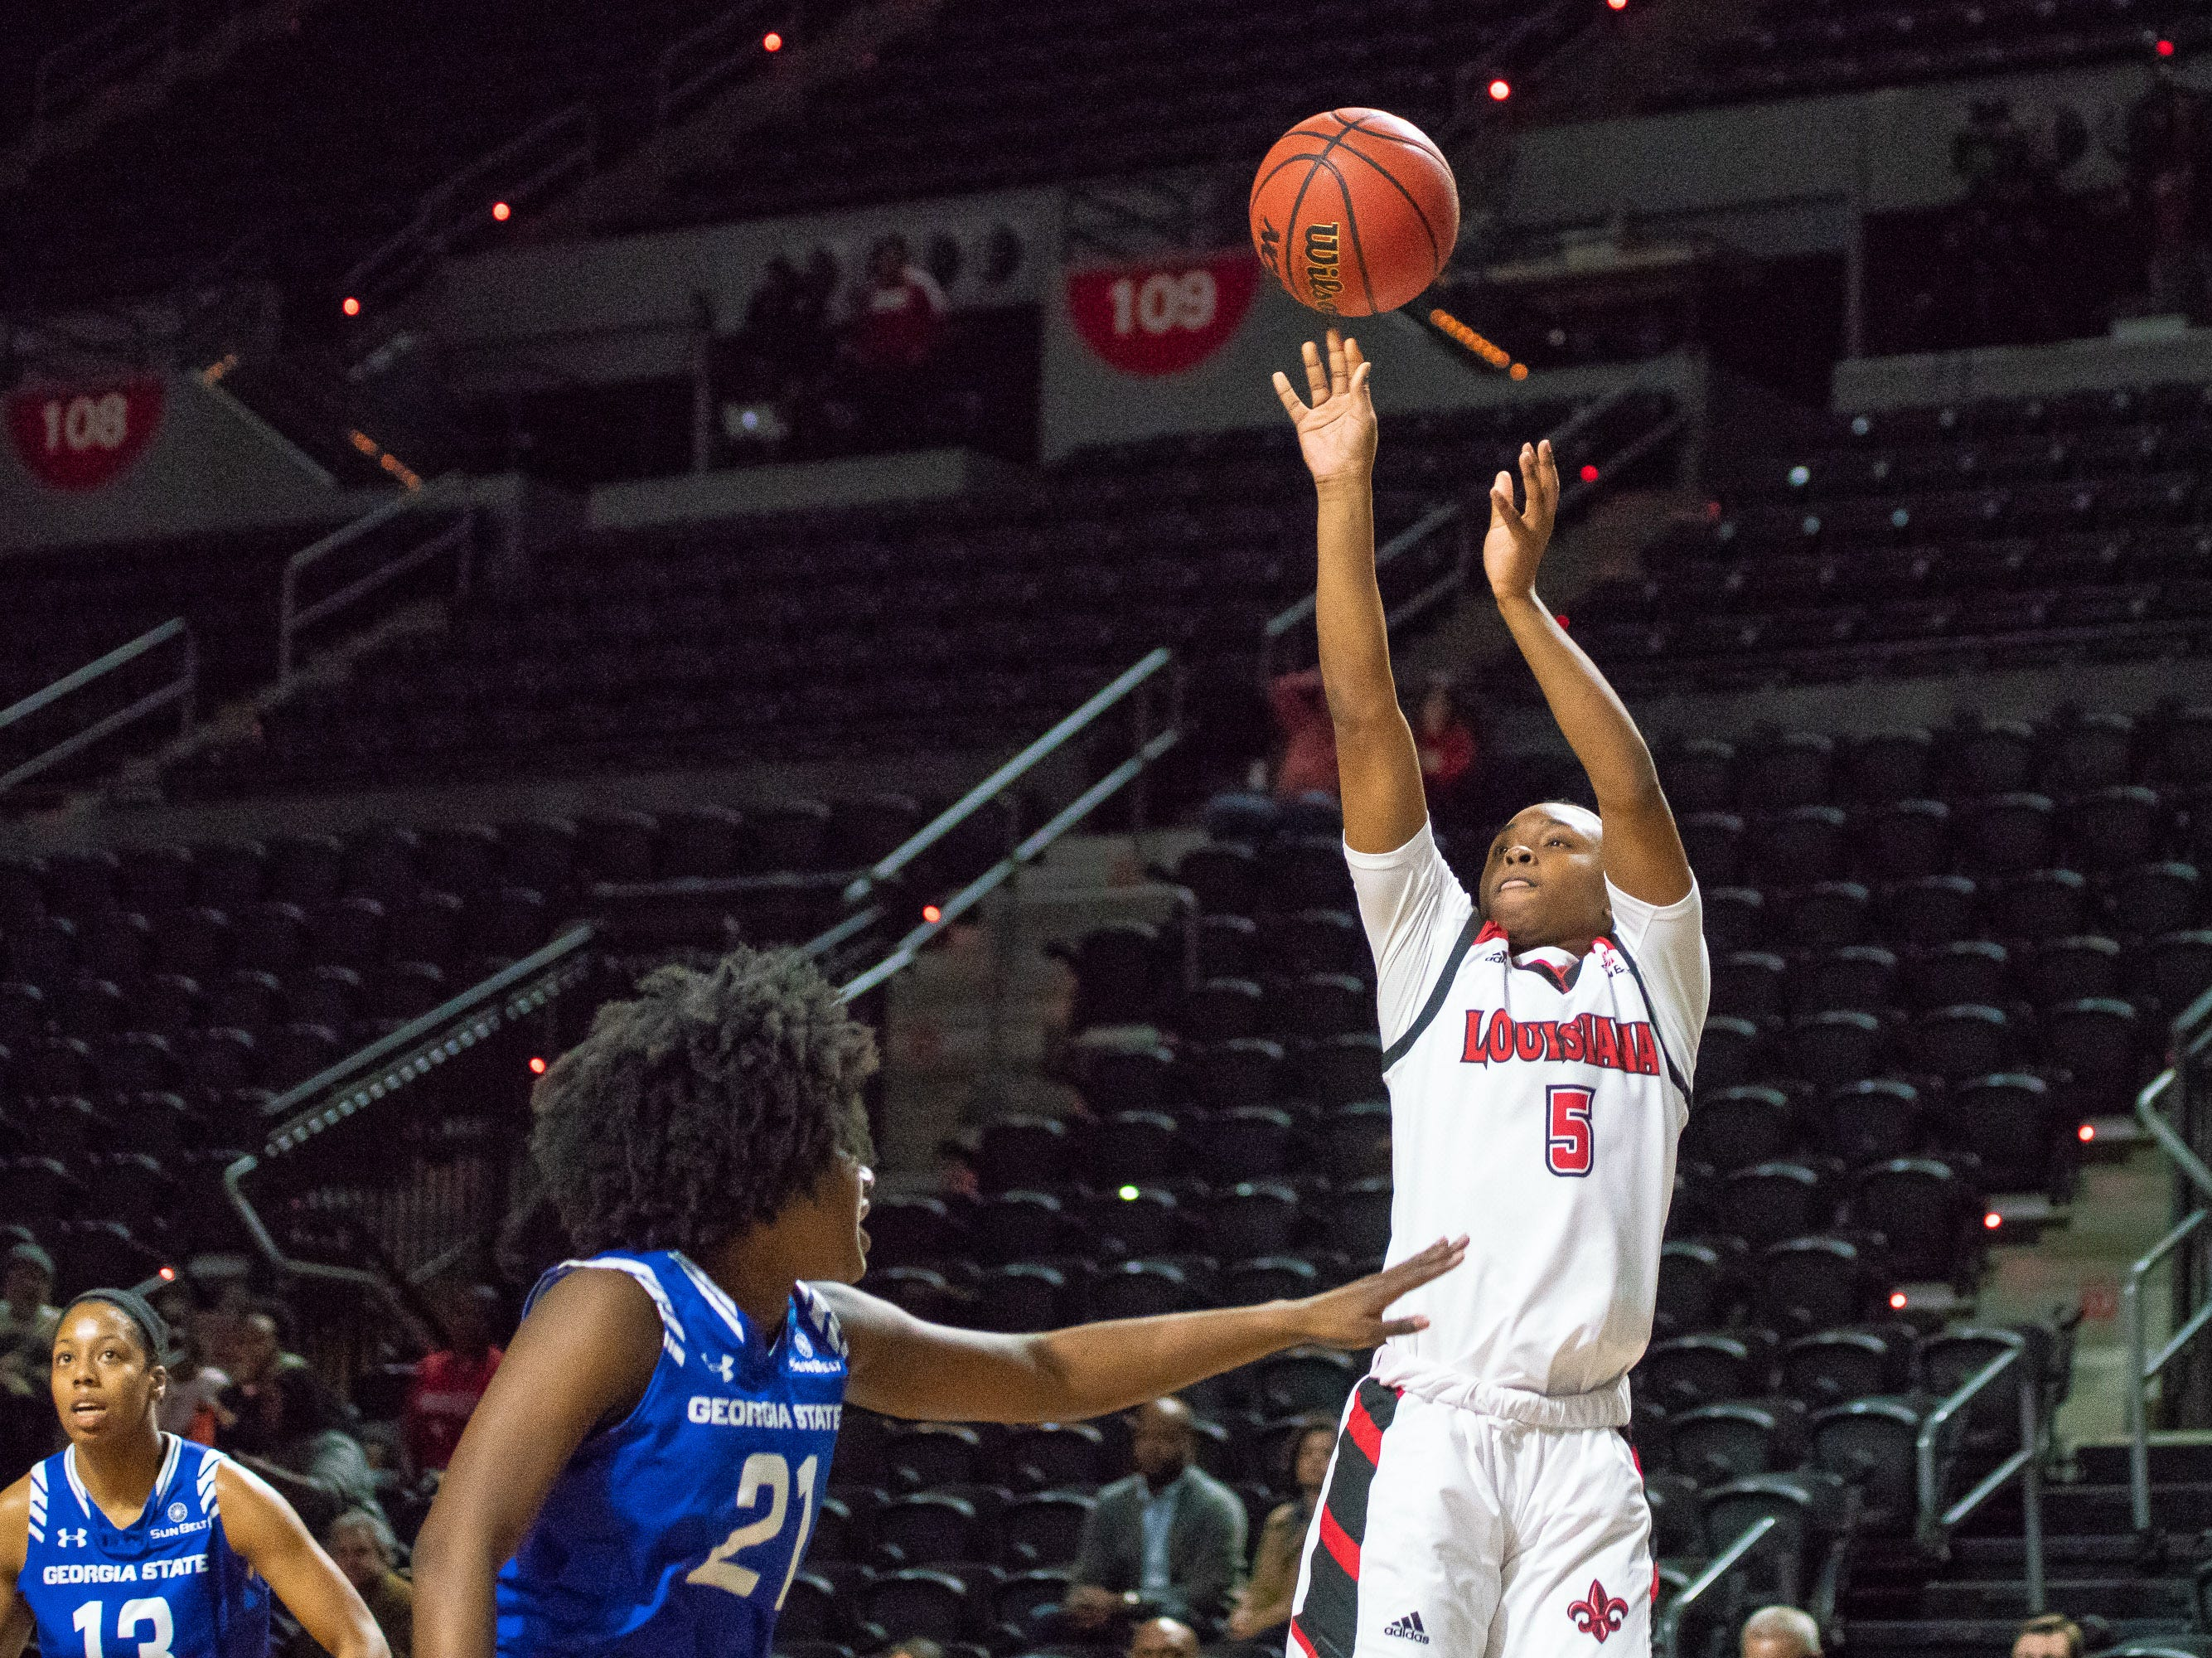 UL's Jomyra Mathis shoots the ball during the play as the Ragin' Cajuns play against the Georgia State Panthers at the Cajundome on January 10, 2019.